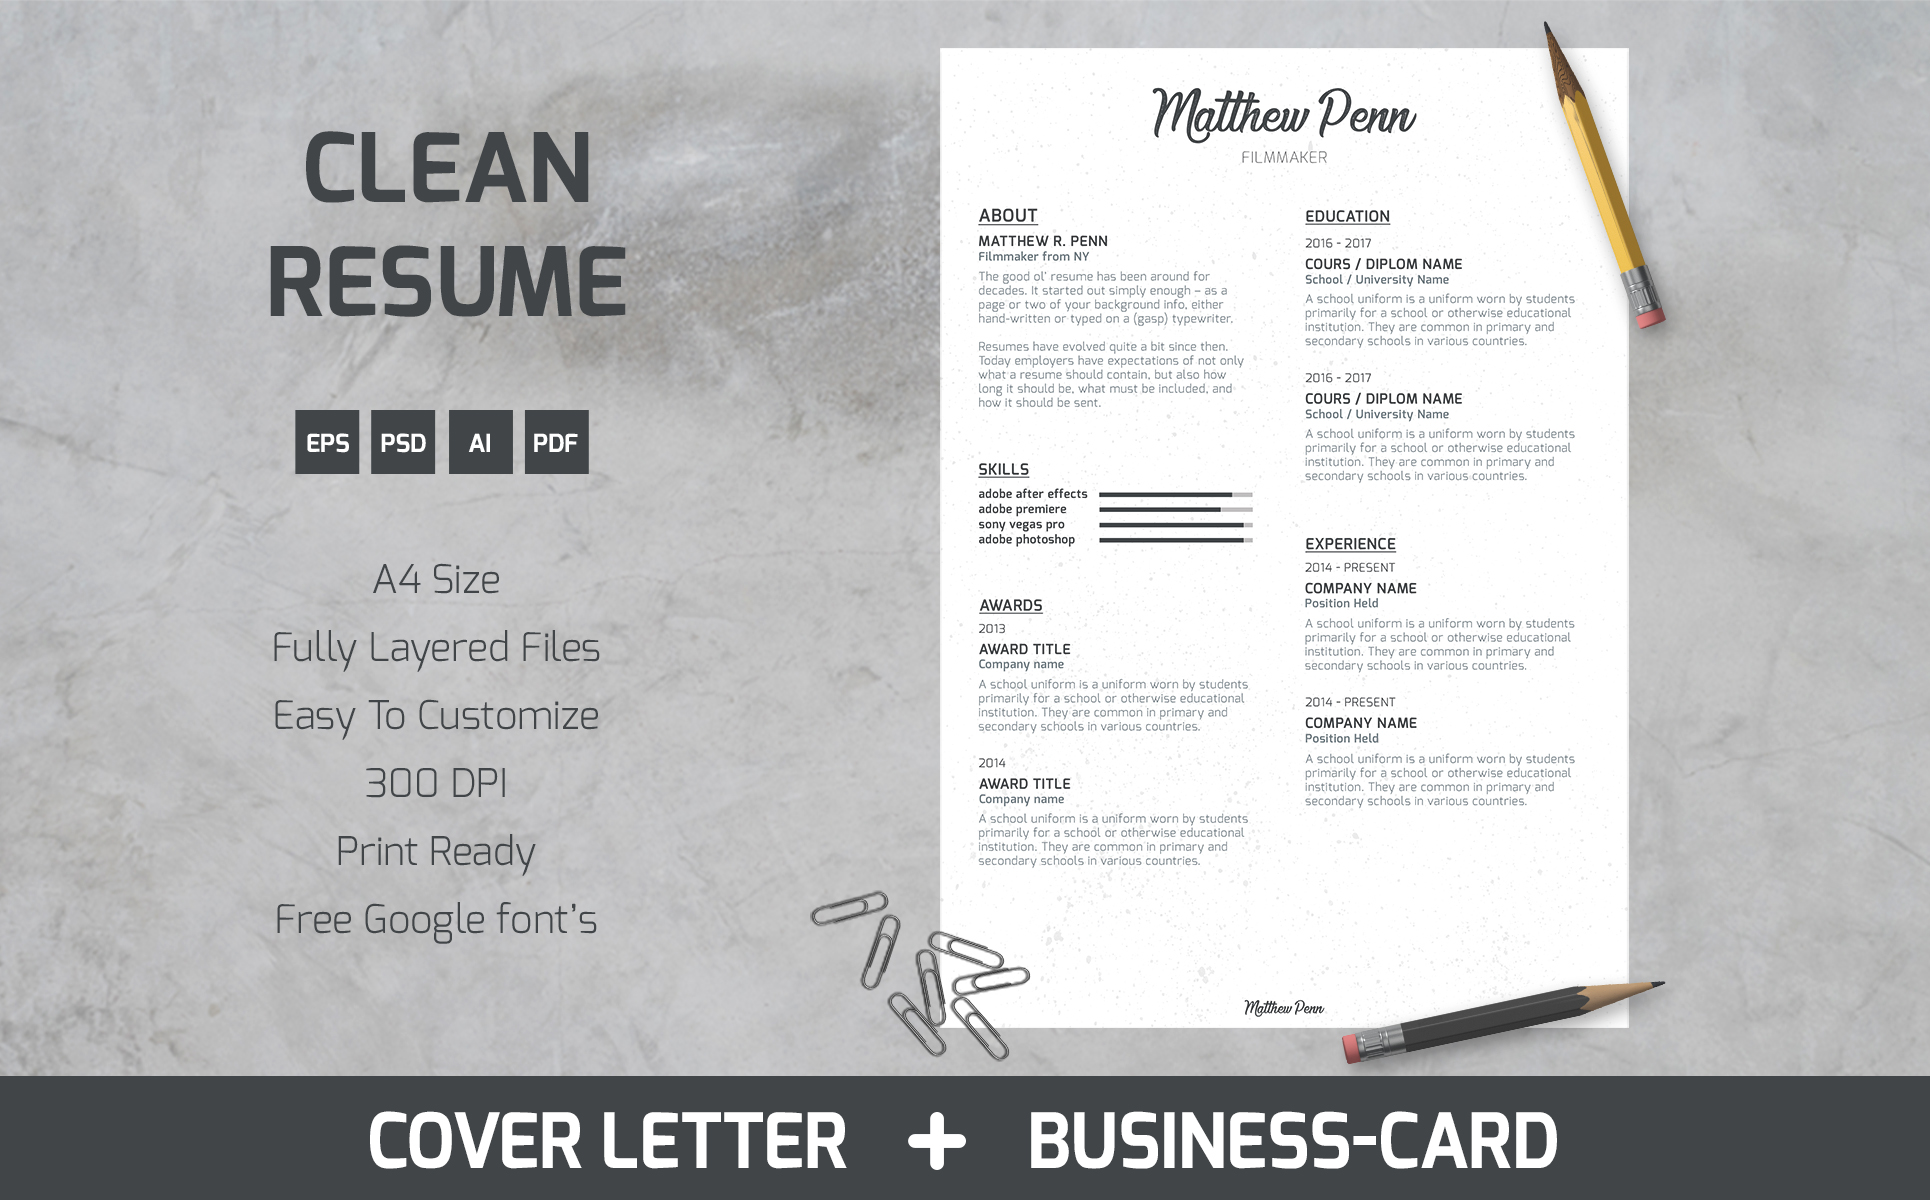 Matthew Penn - Filmmaker Resume Template #64897